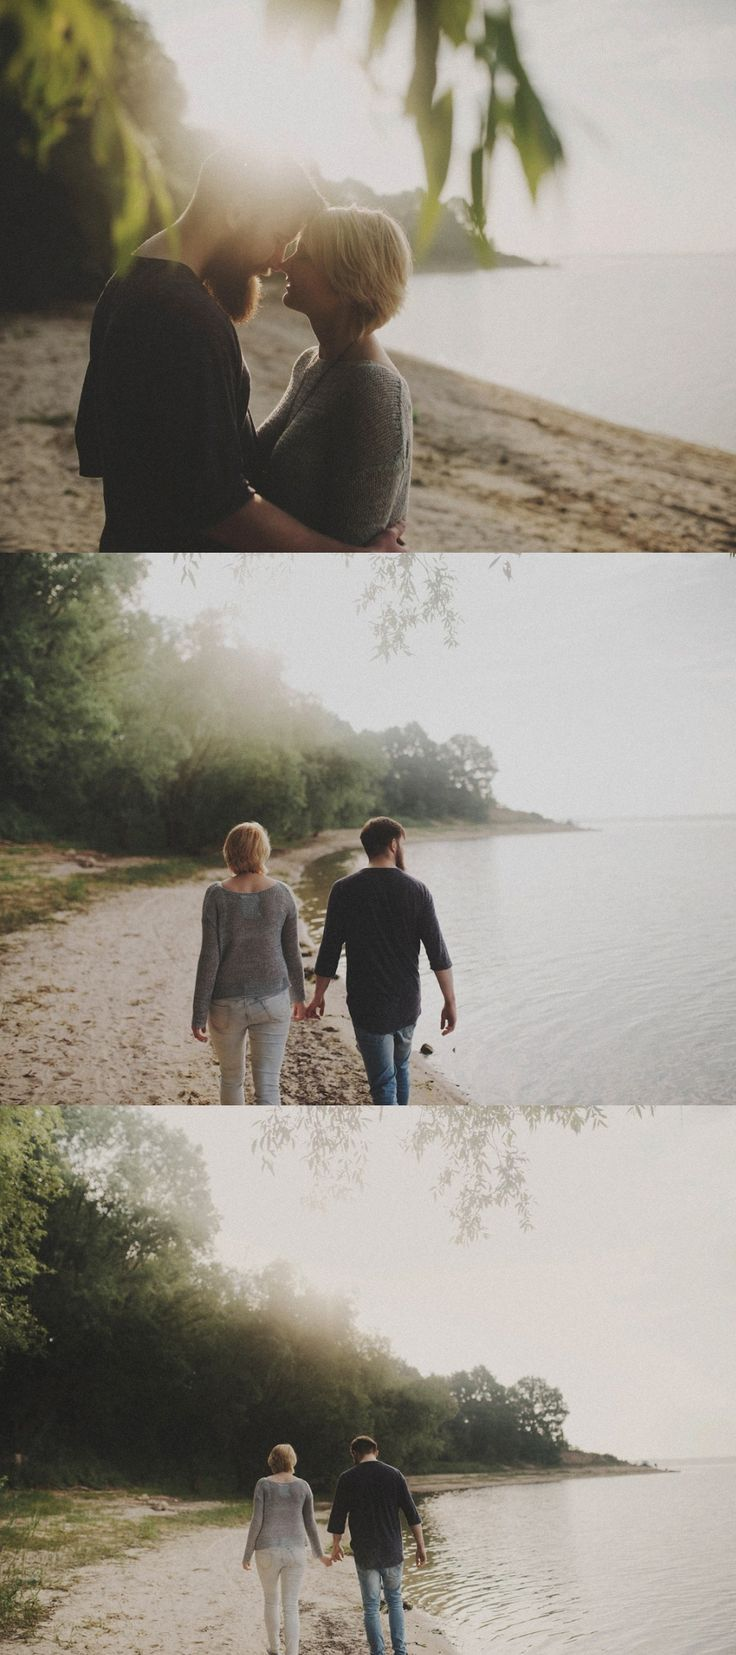 Engagement photoshoot by Pikselove. #sun #sunlight #couple #love